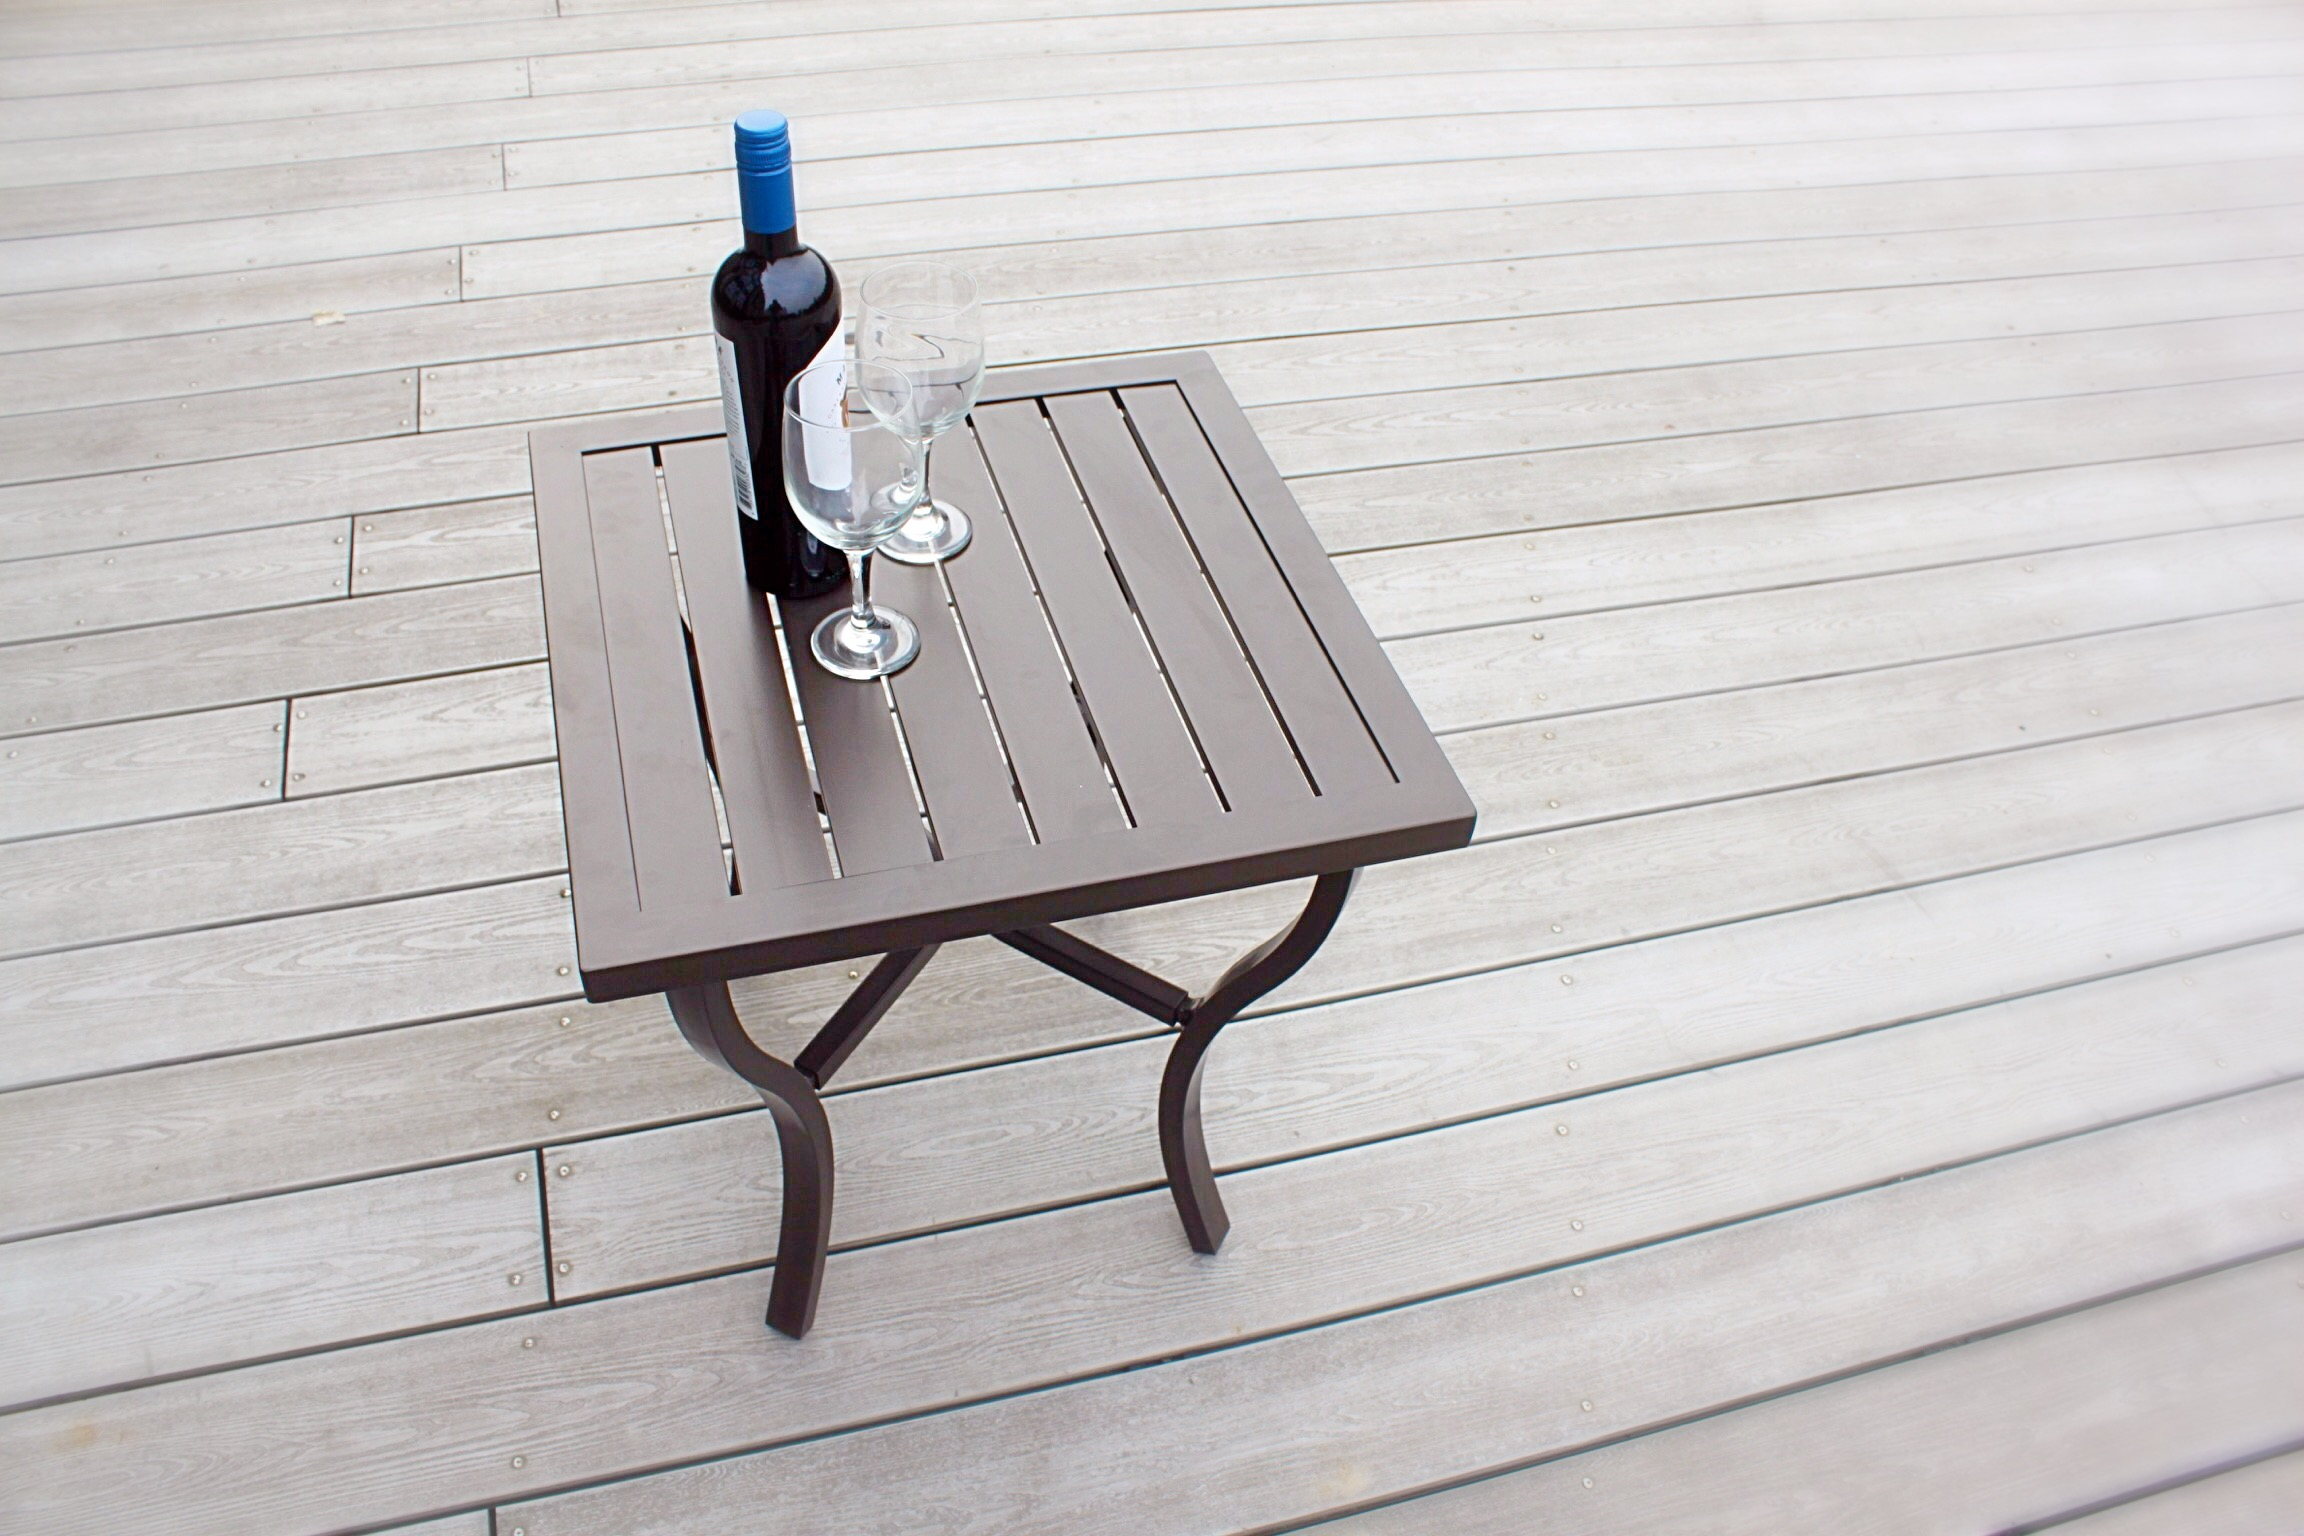 outdoor patio side table img copy aluminum with slat top bronze chess coffee clearance emerald green dining chairs bedroom night lamps small bedside light living room furniture